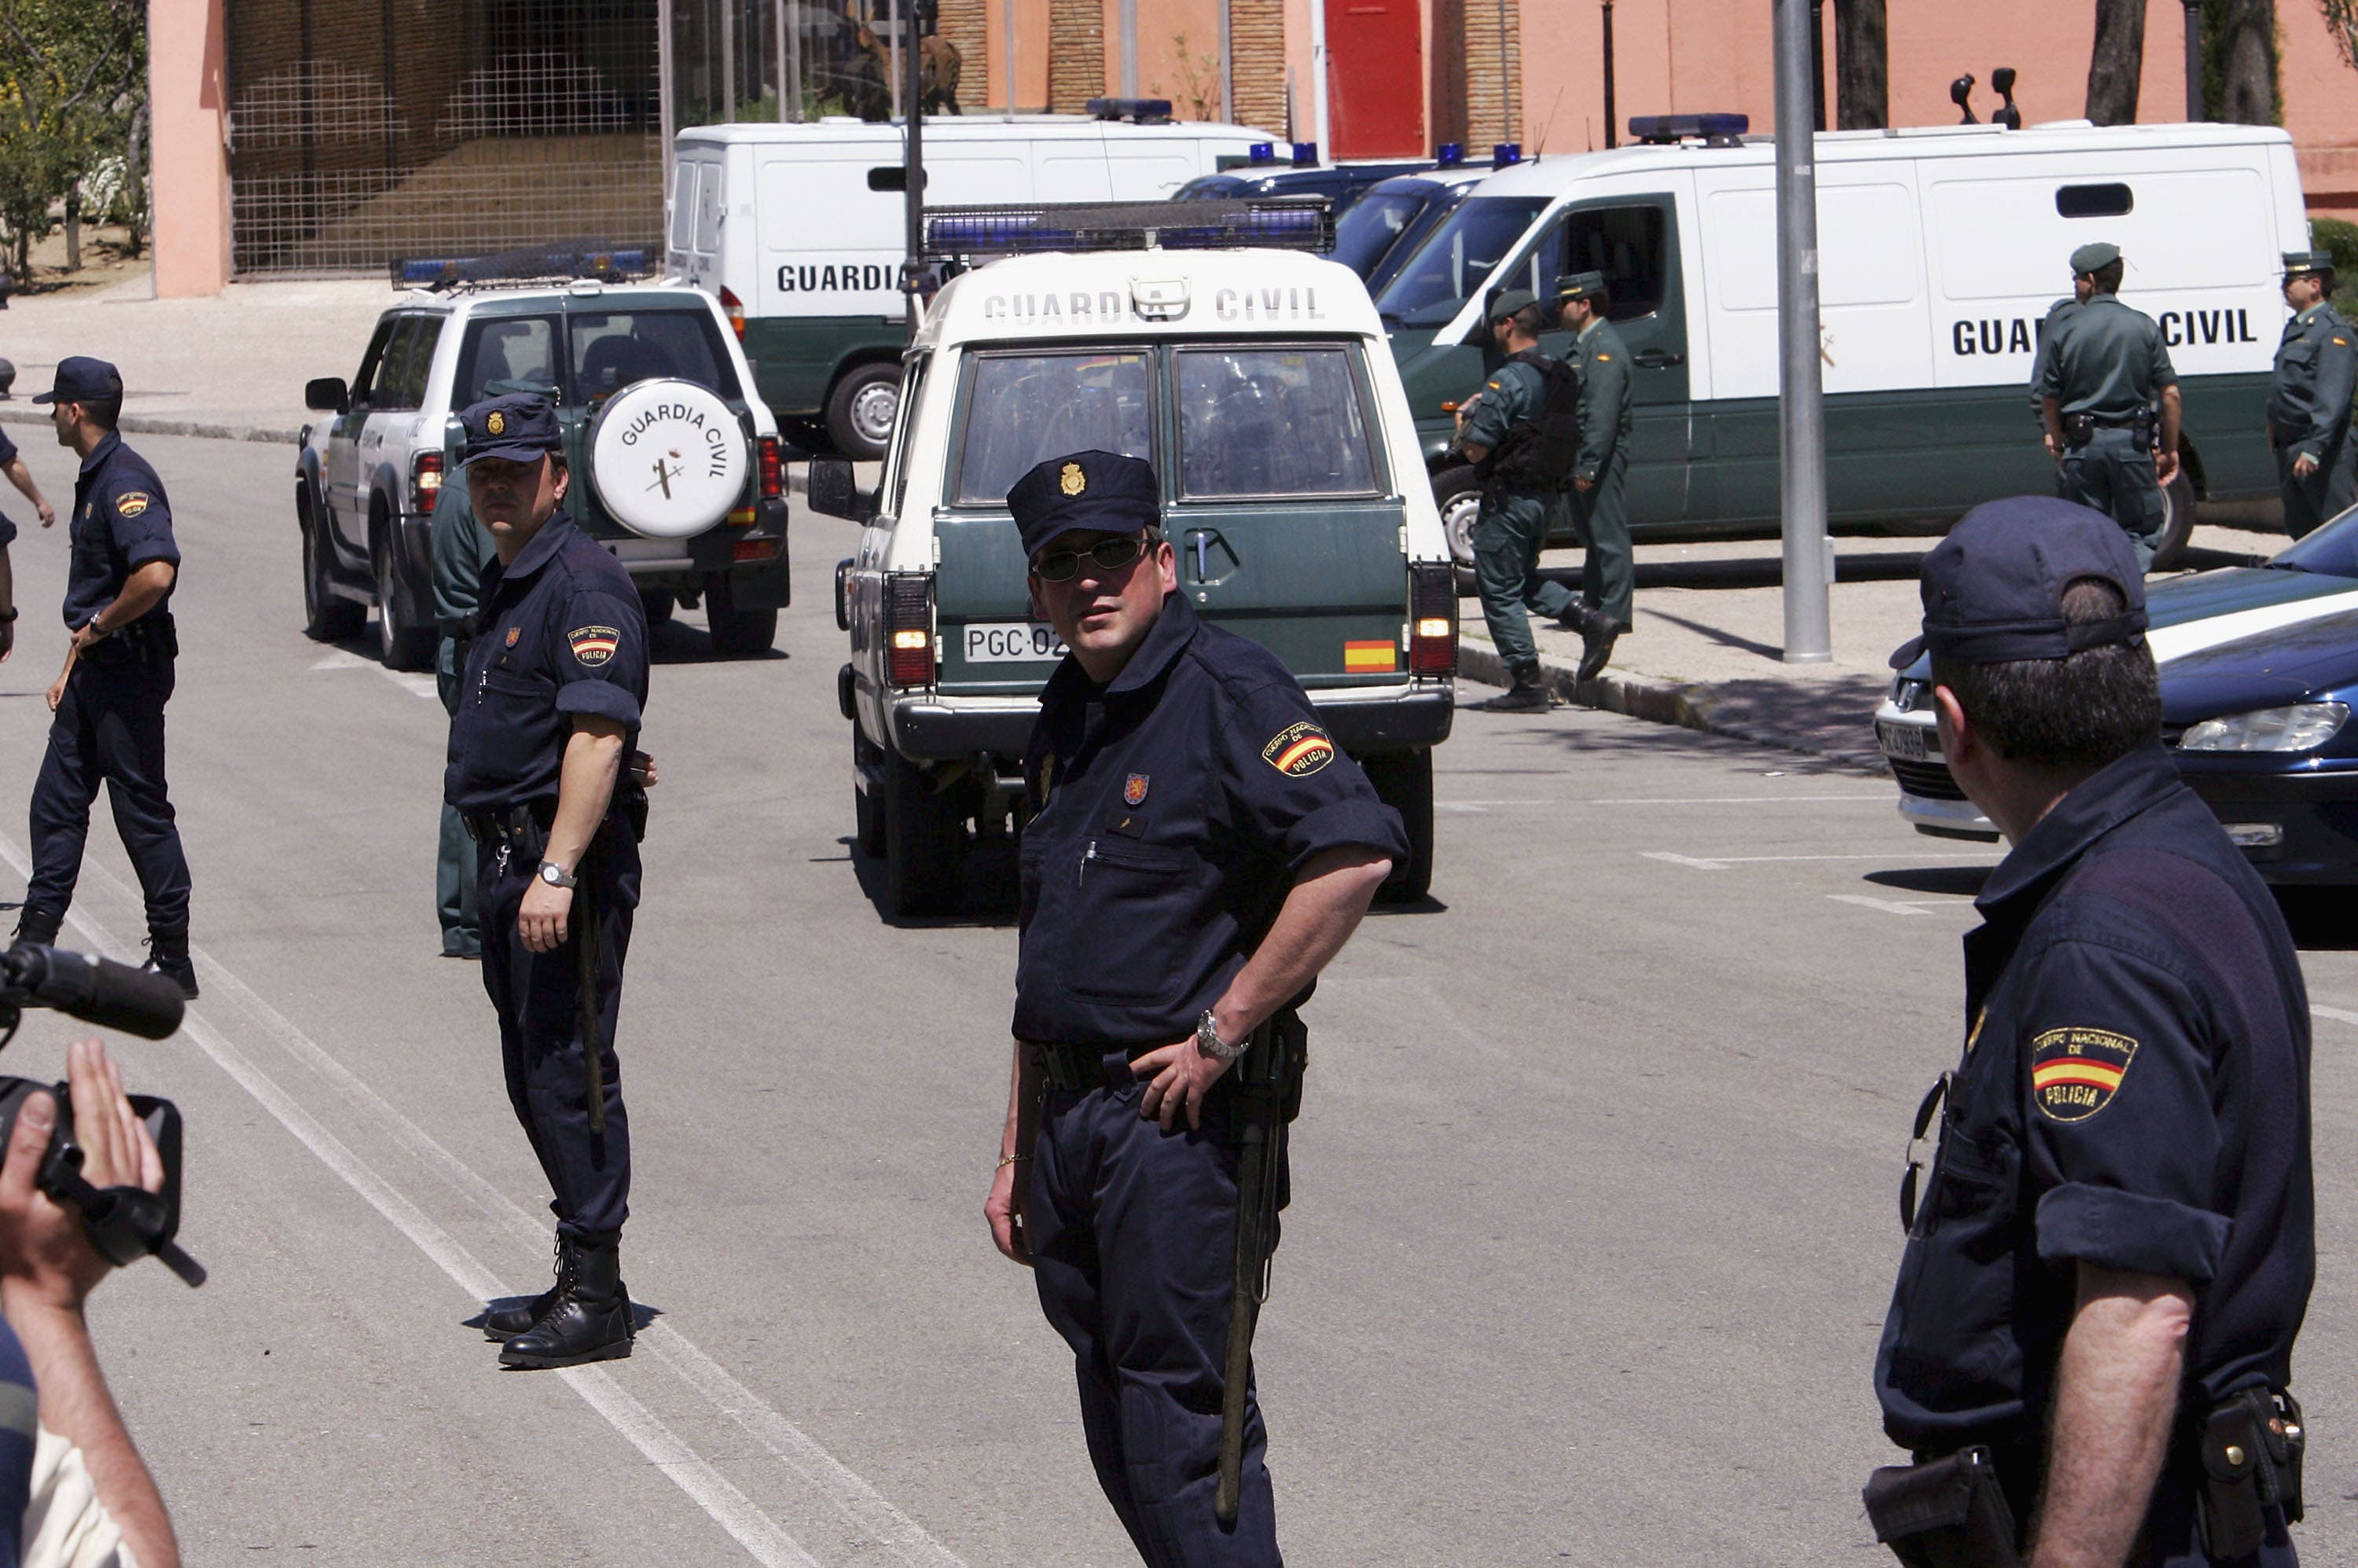 Spanish police outside the courthouse during the trial of the Madrid bombing suspects in 2005 (Getty)